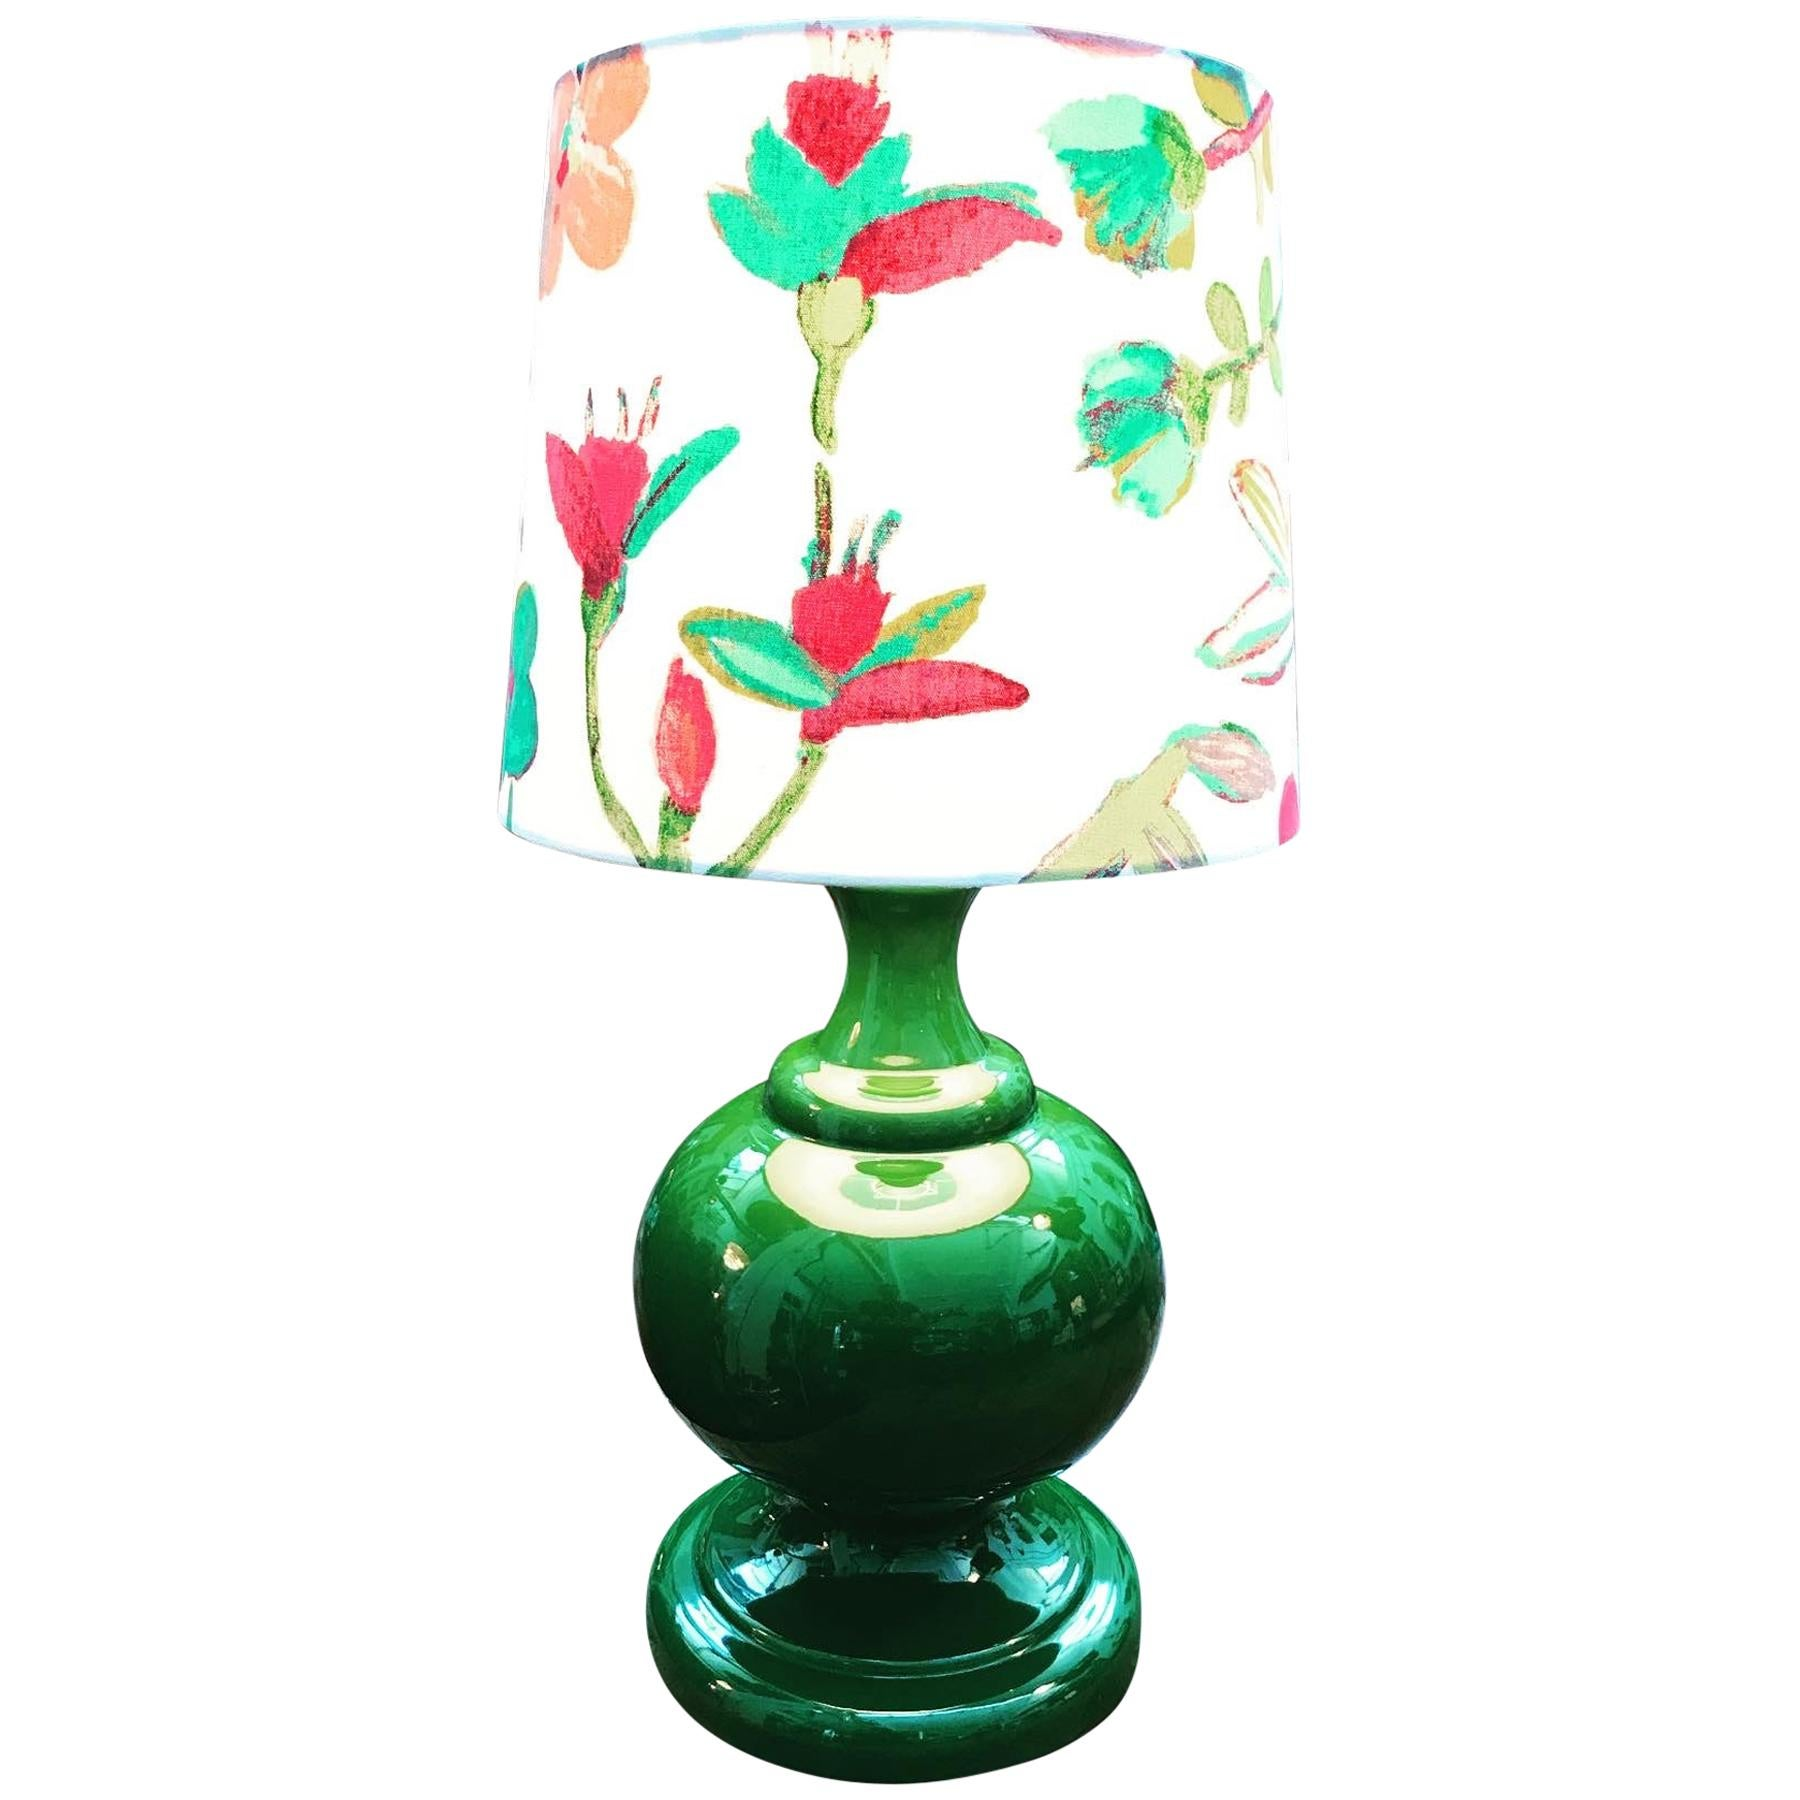 Danish Vintage Retro Porcelain Table Lamp from the 1960s